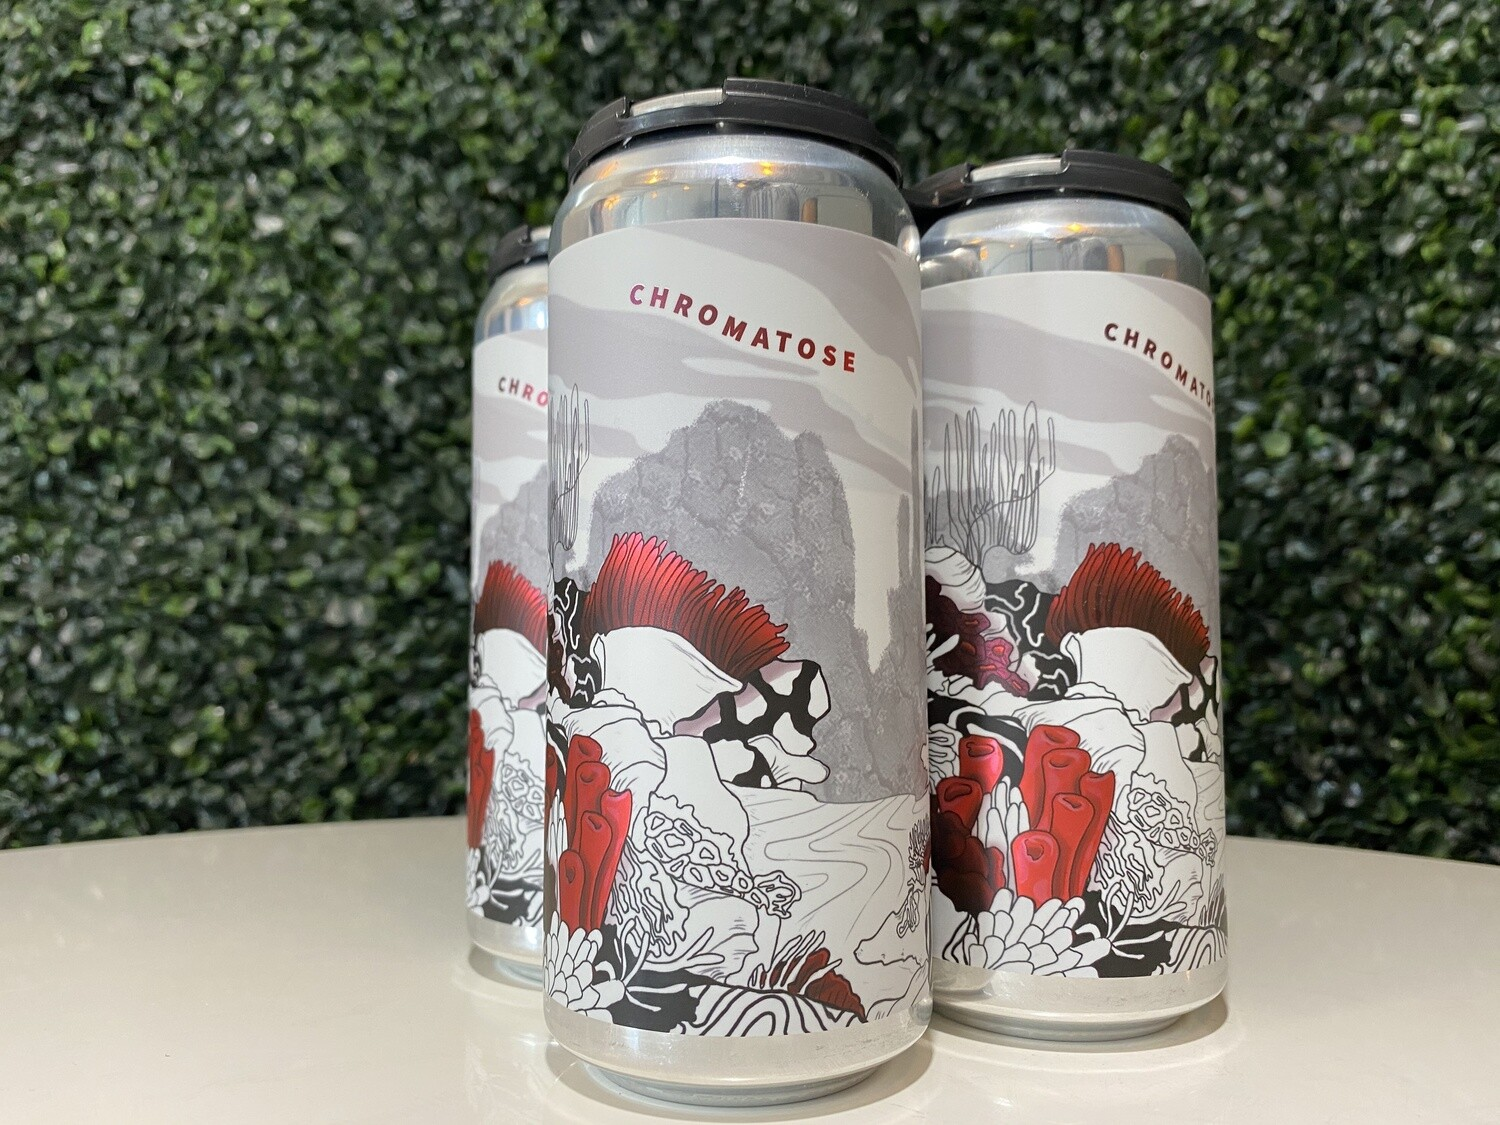 Two Tides - Chromatose - Fruited Sour - 5.2% ABV - 16oz Can